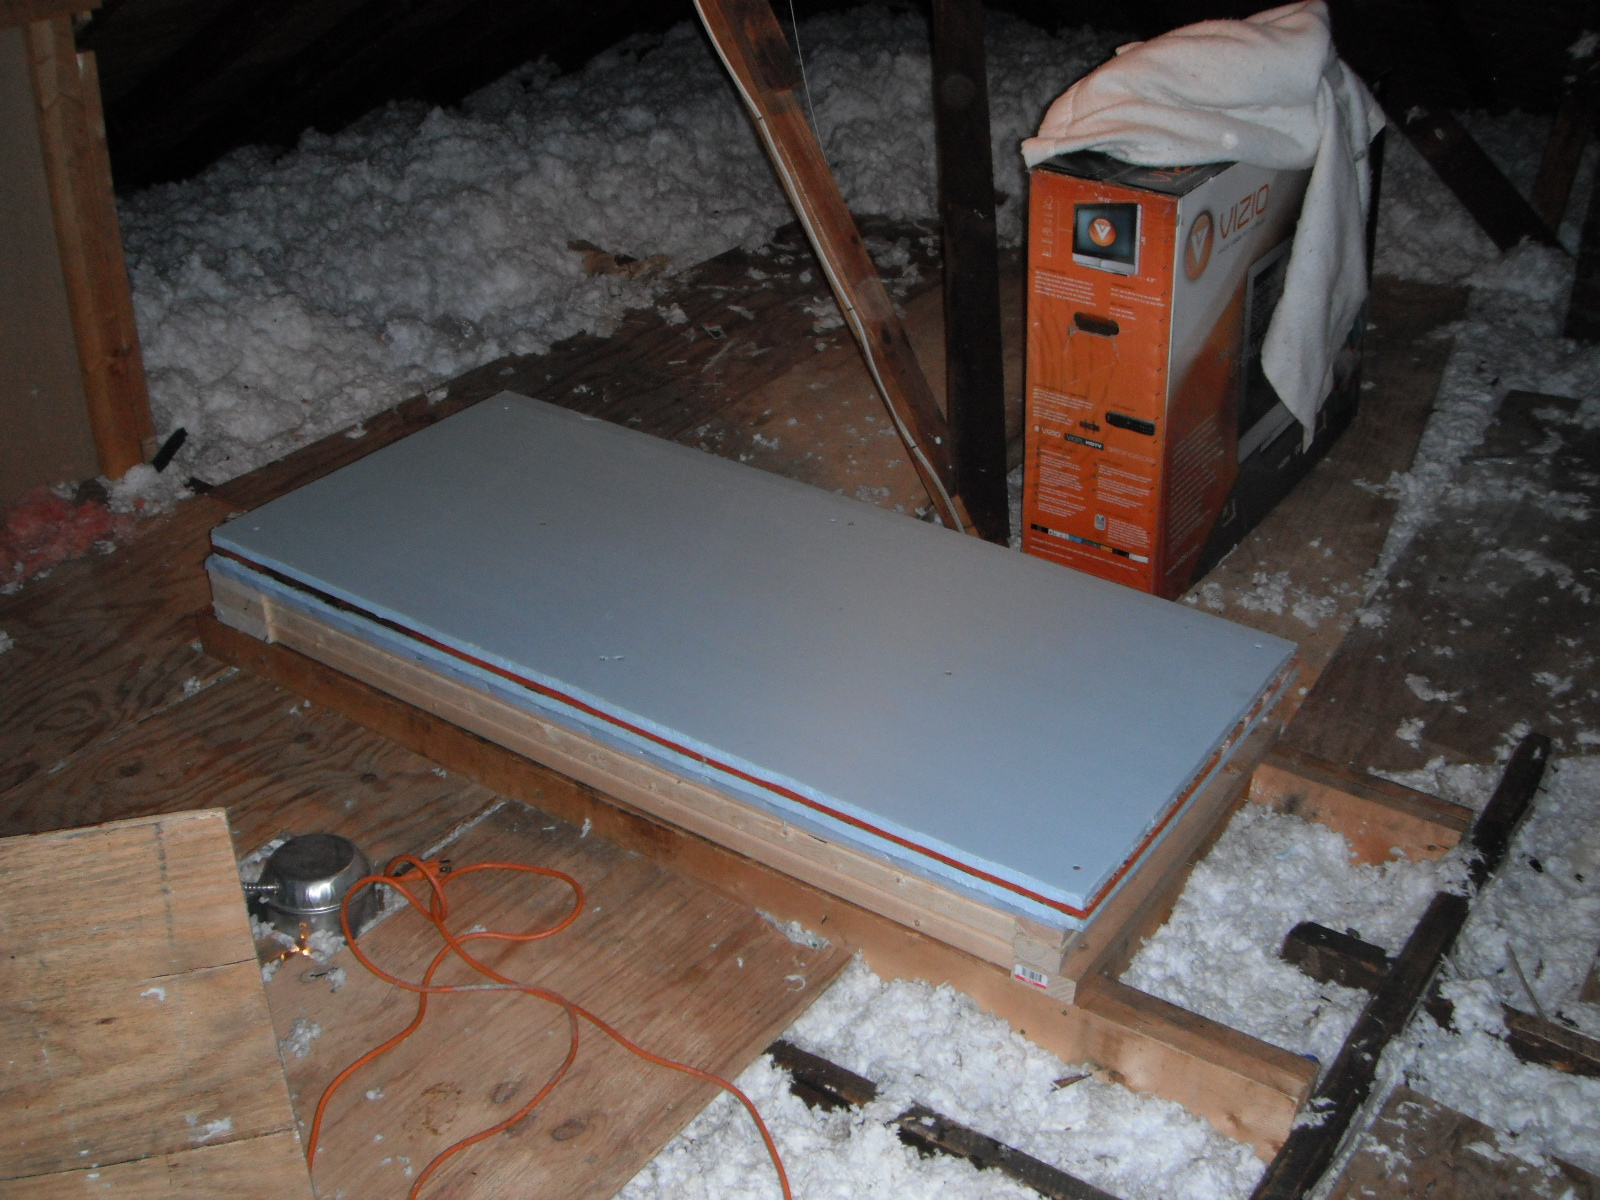 Fall Proof Full Proof Attic Ladder Attic Access Cover Stetten pertaining to sizing 1600 X 1200